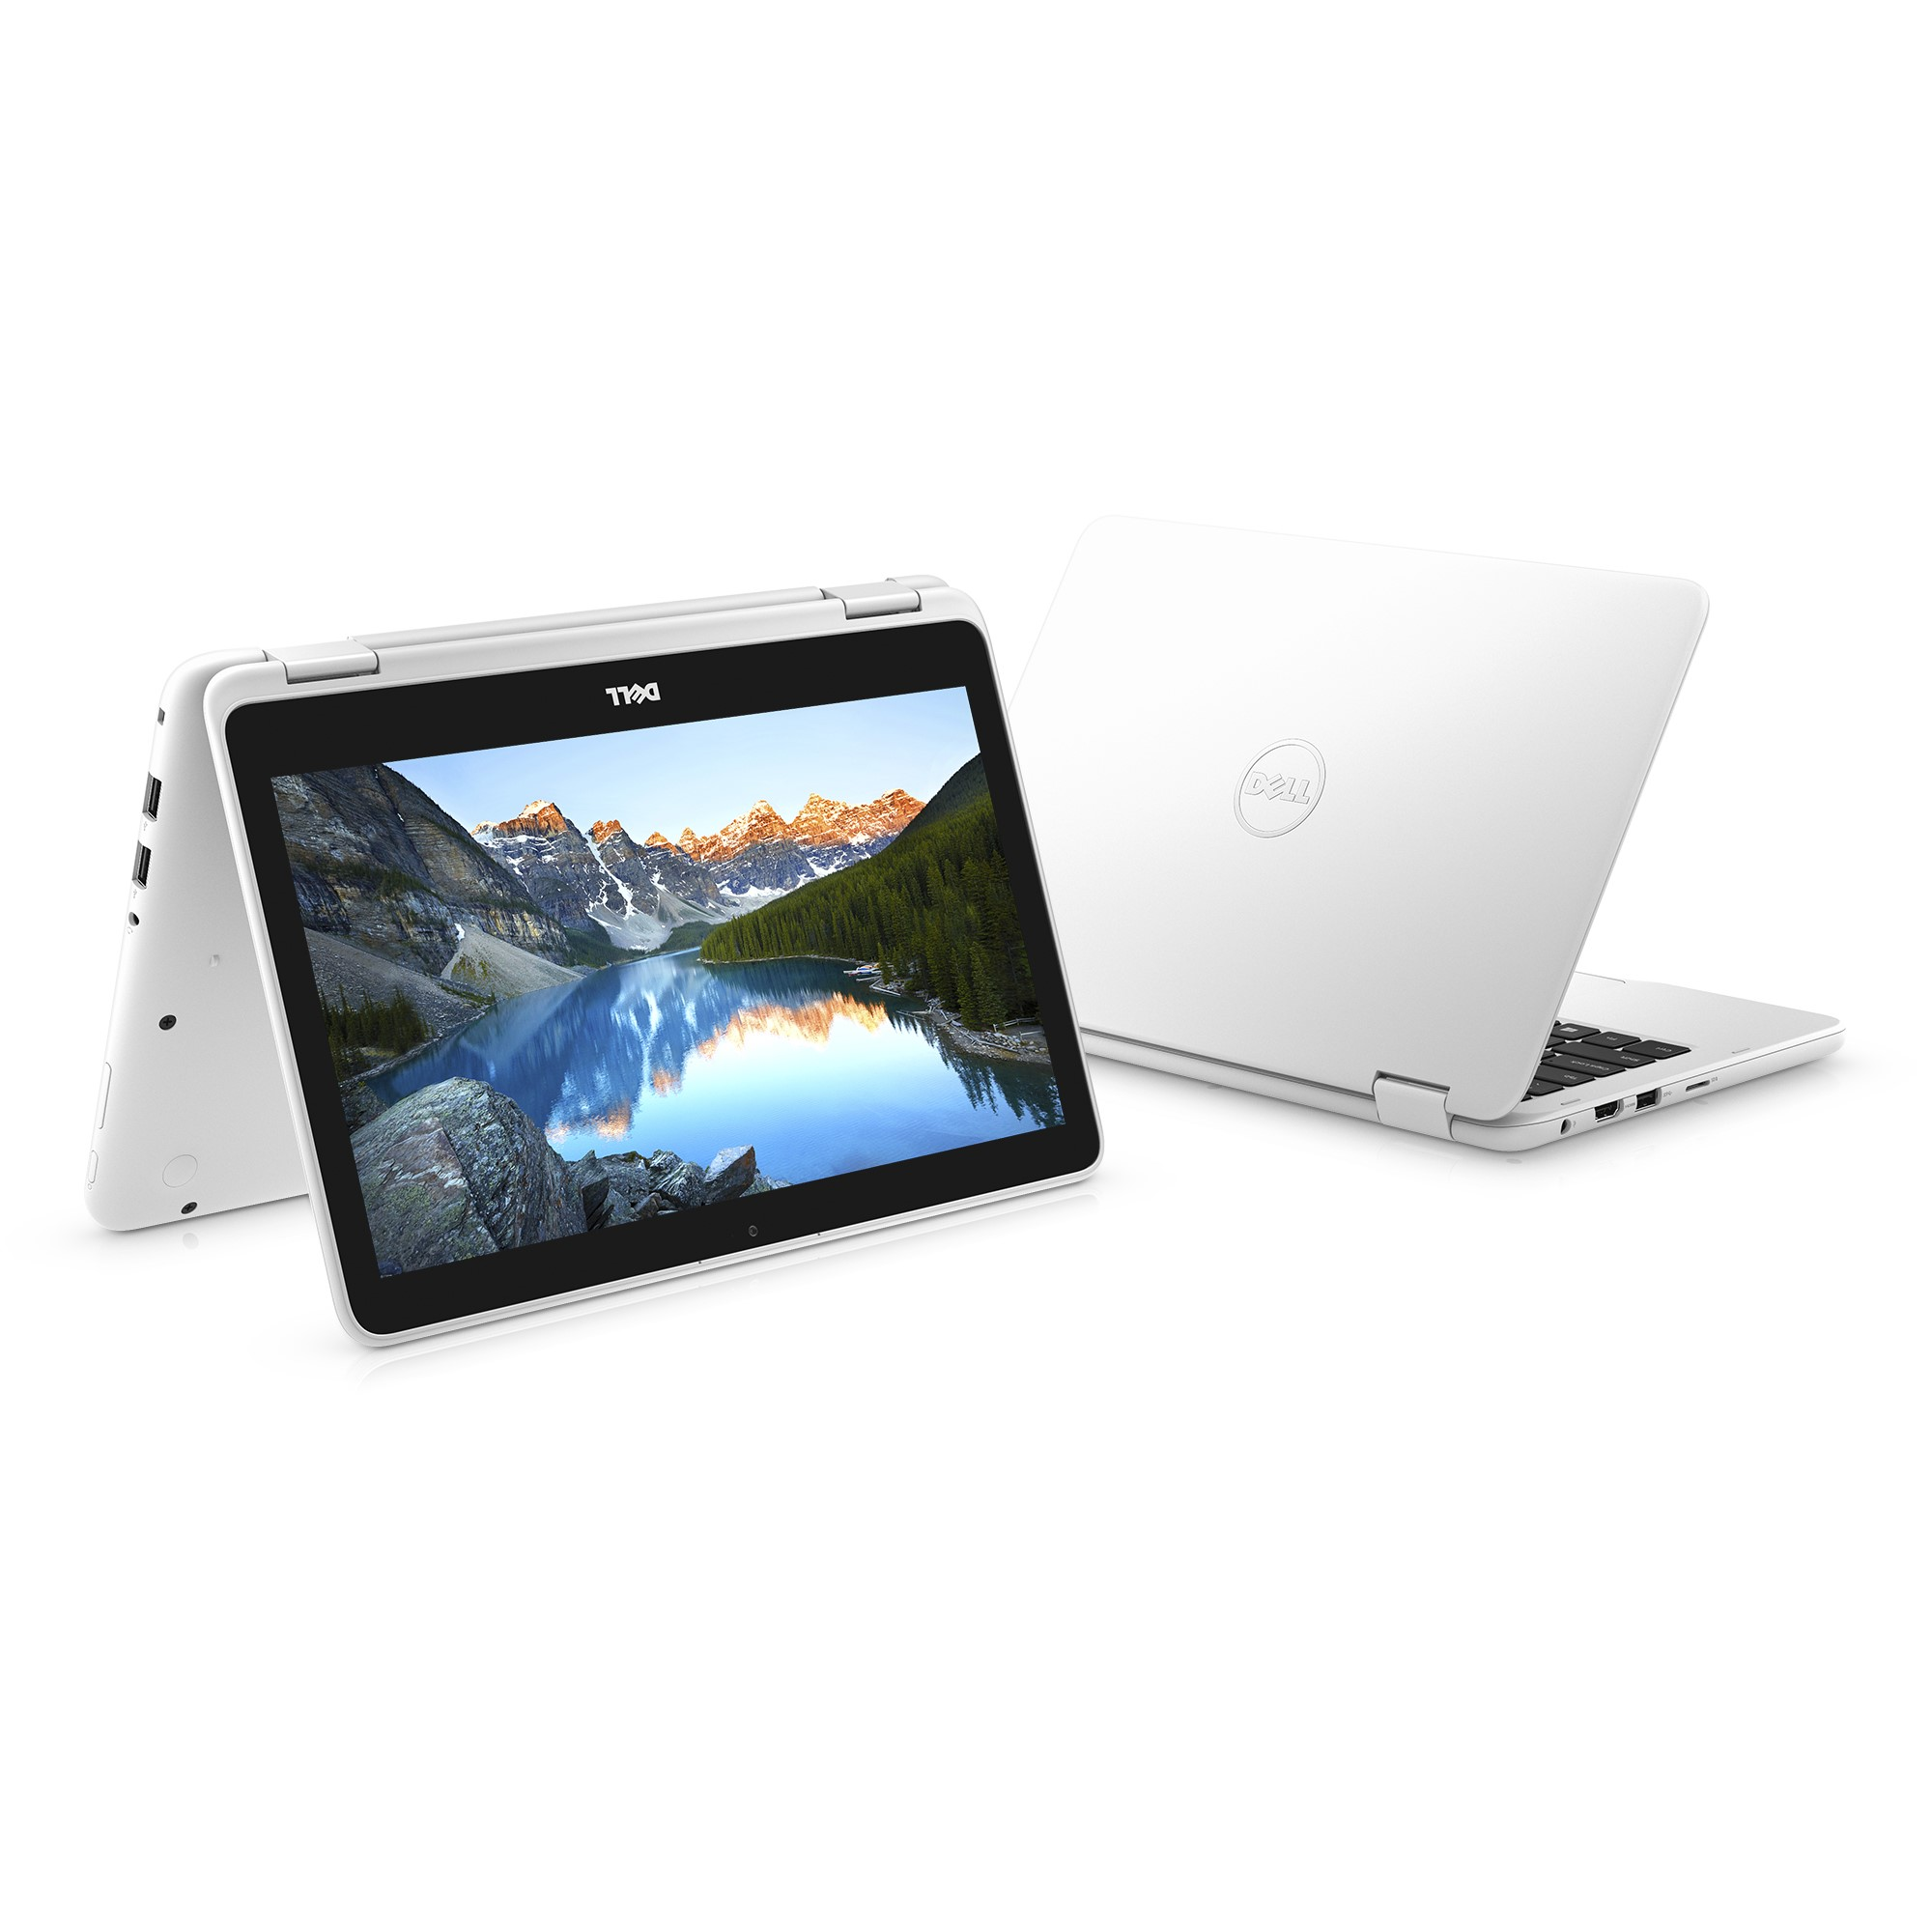 Refurbished Dell I3185 A115wht Pus Inspiron 11 6 Inch Laptop 7th Gen Amd A6 9220e 1 6 Ghz 4gb Ram 32gb Ssd Windows 10 Walmart Com Walmart Com